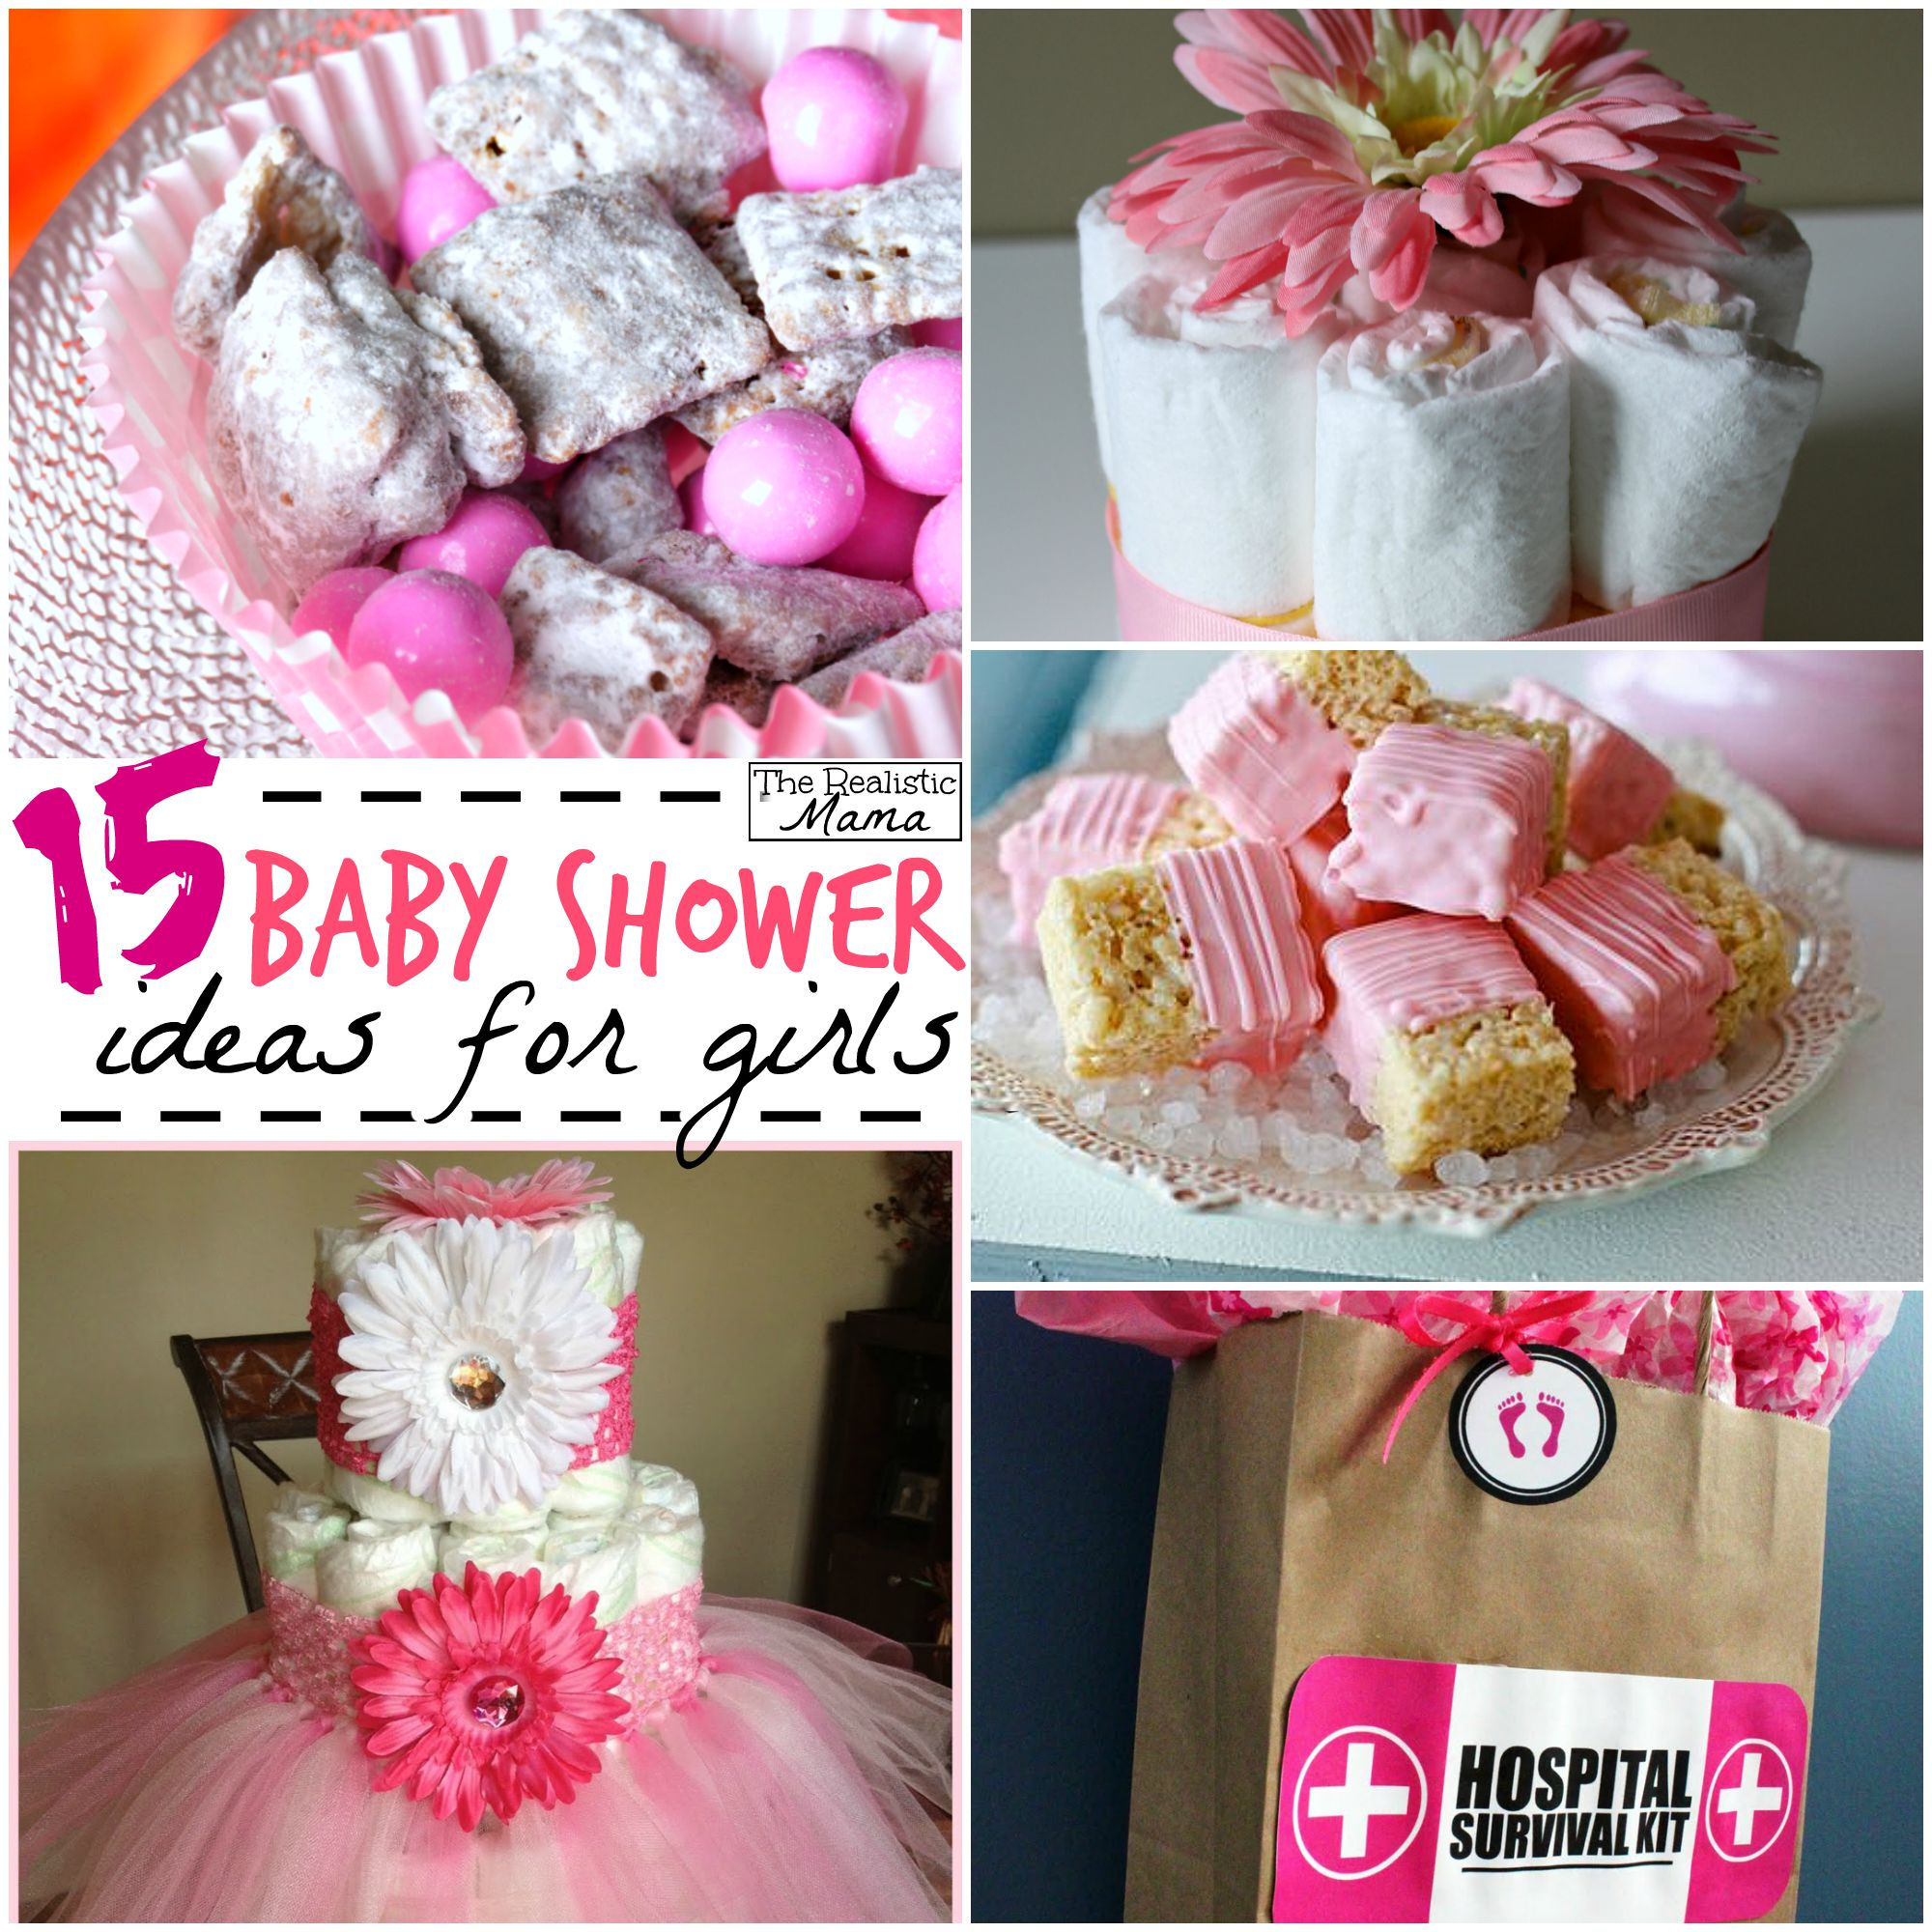 baby shower ideas for girls  the realistic mama, Baby shower